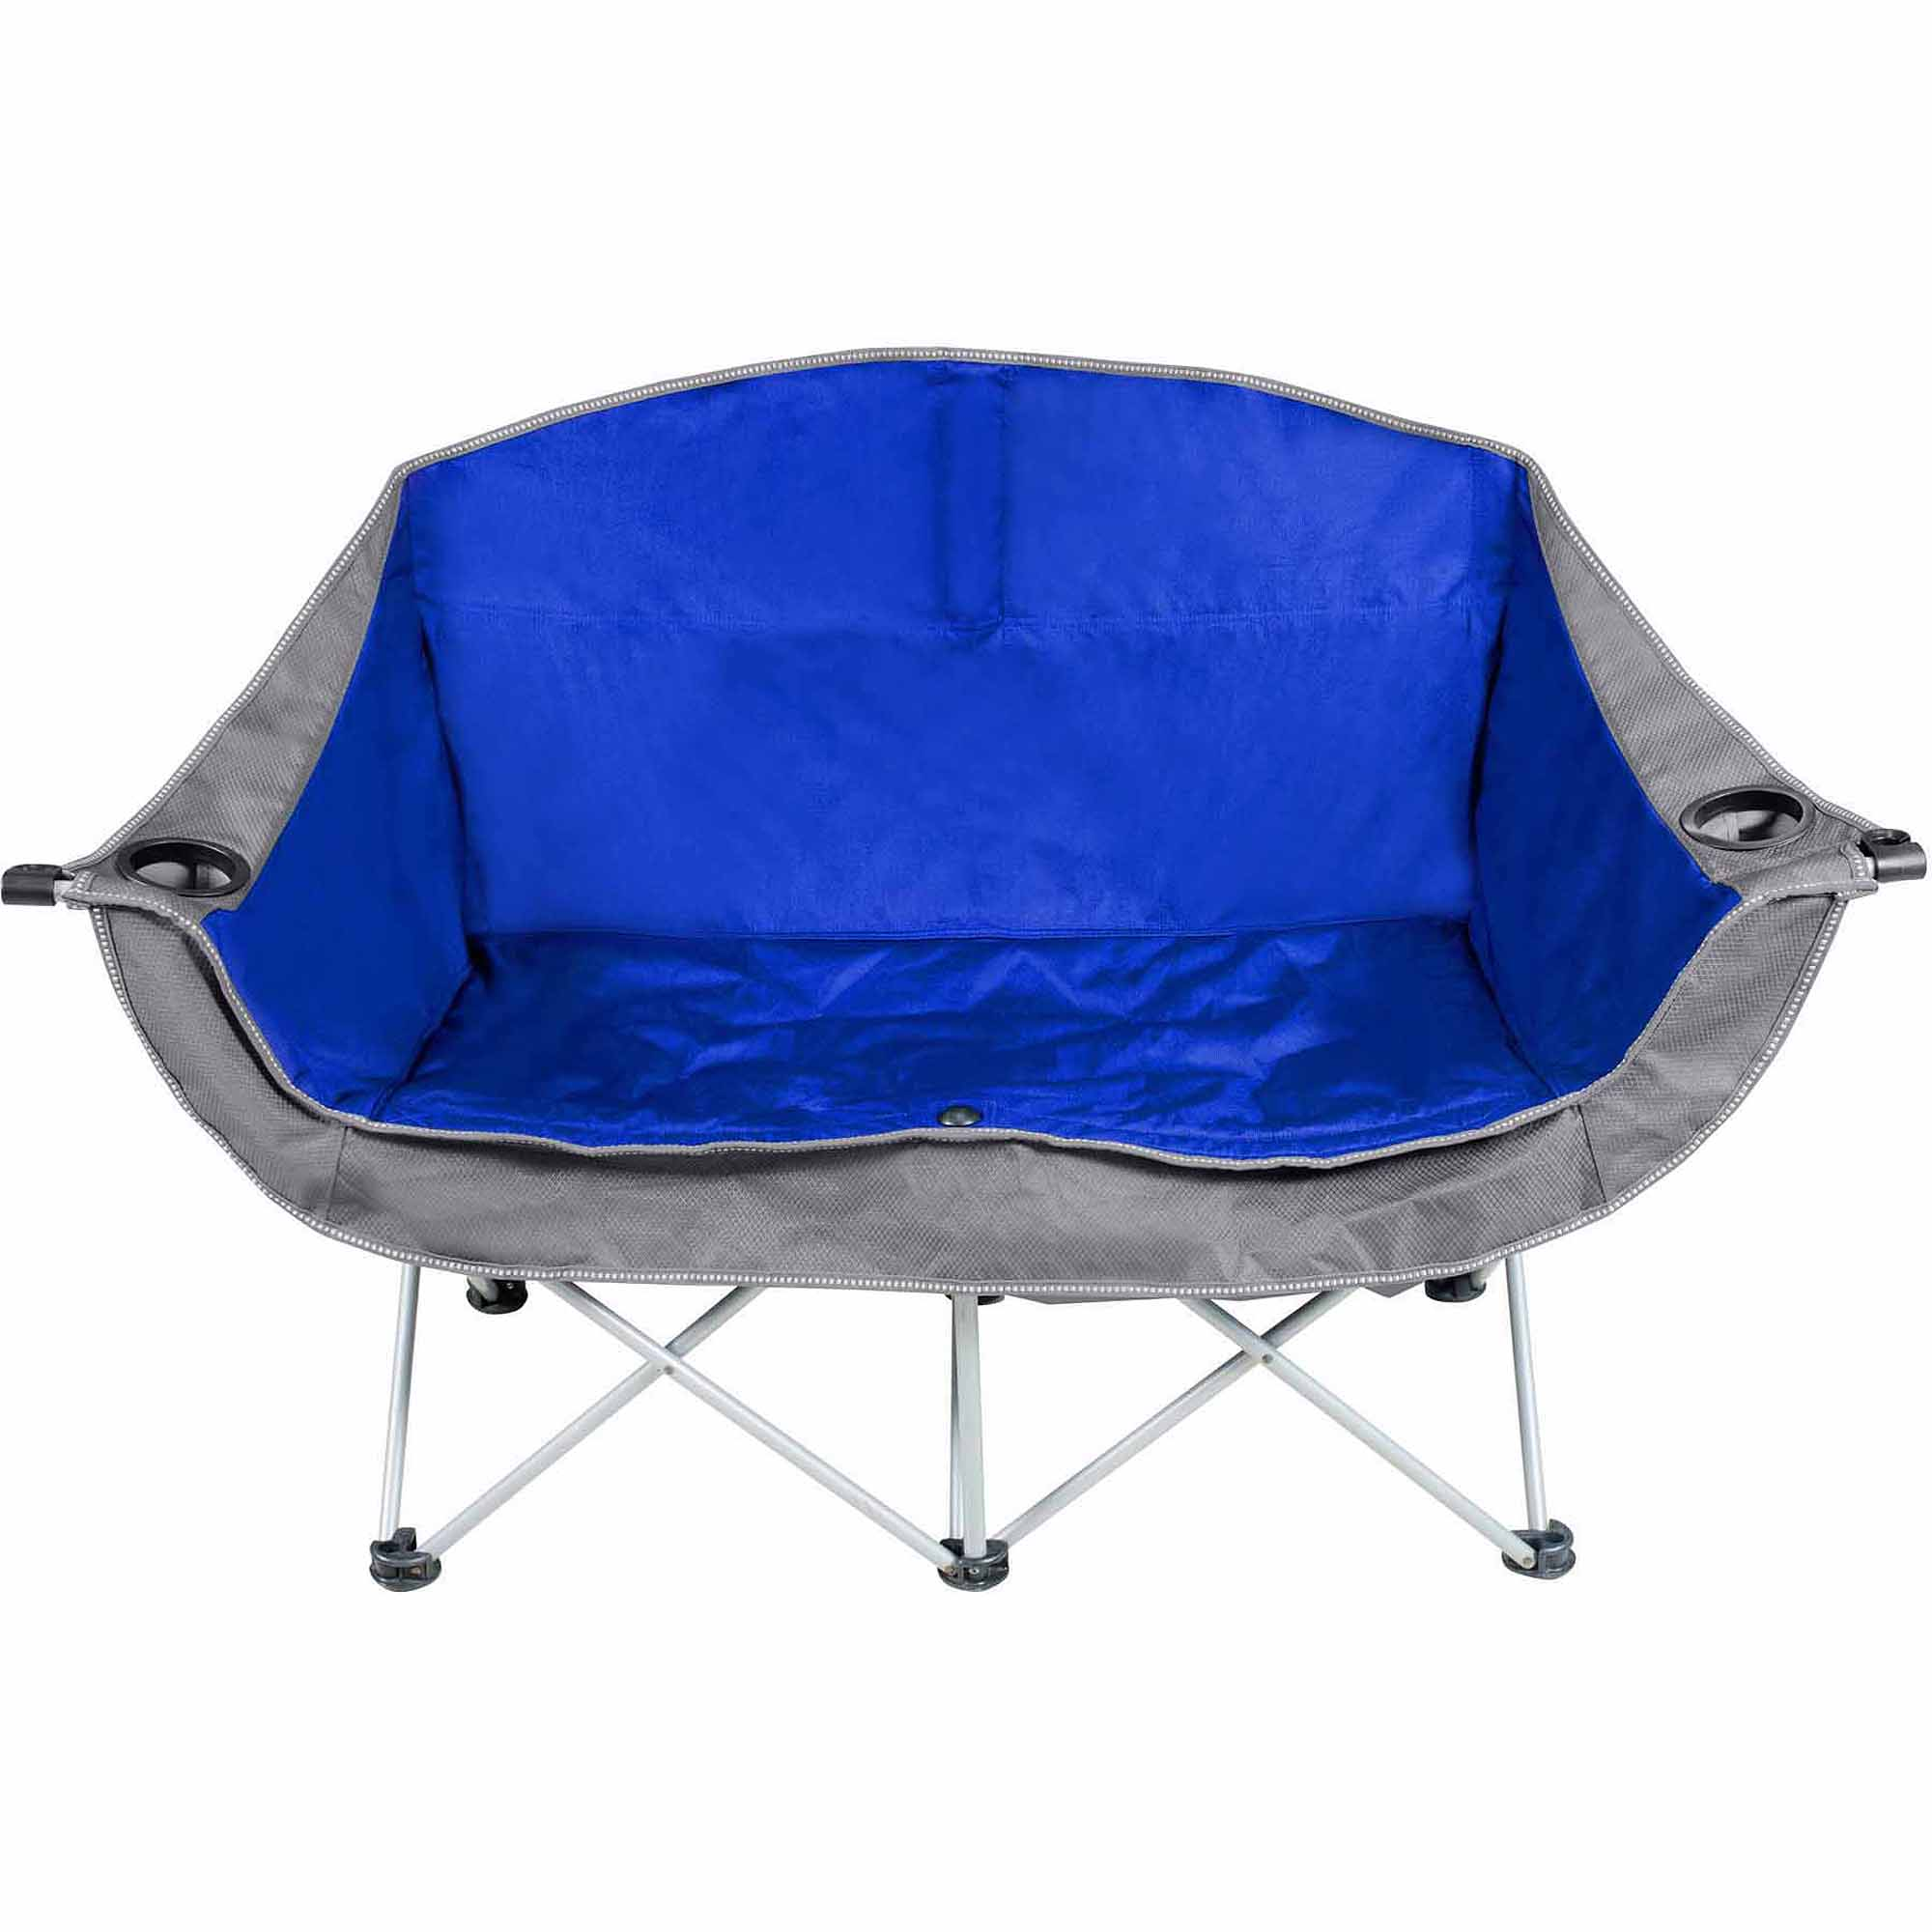 Marvelous Ozark Trail 2 Person Camping Love Seat